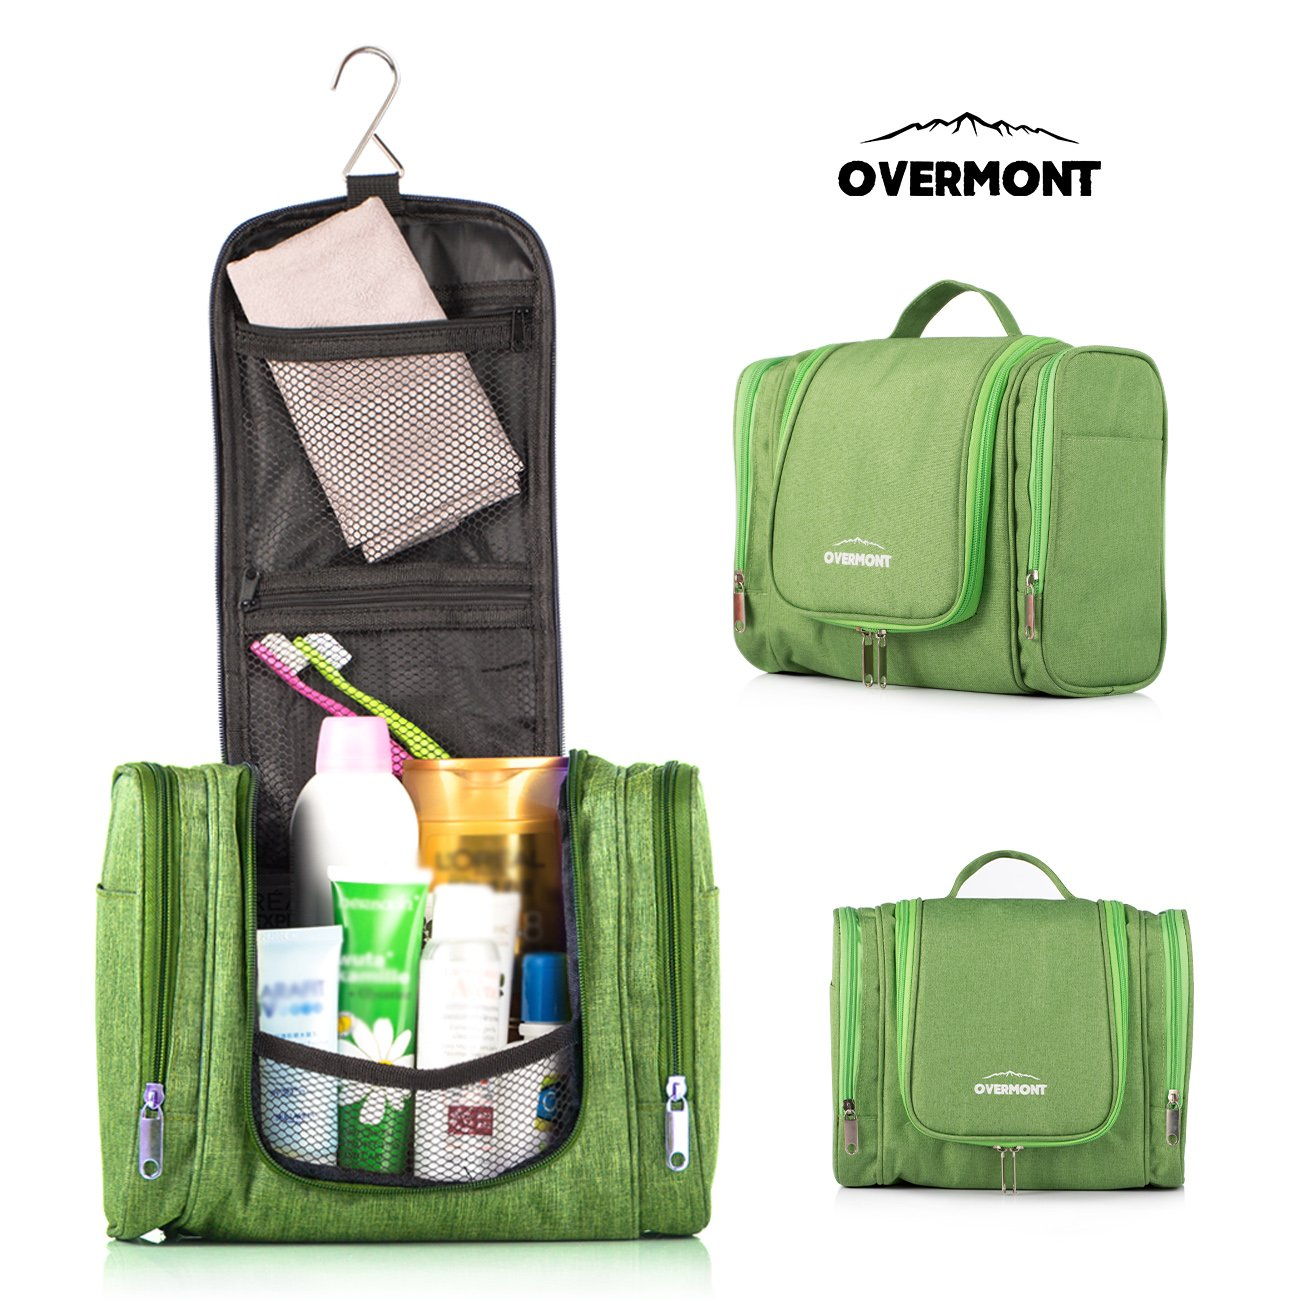 Overmont Hanging Toiletry Bag, Large Capacity Storage Package Travel Camping Hiking Hiking Camping Green/Black / Dark Blue